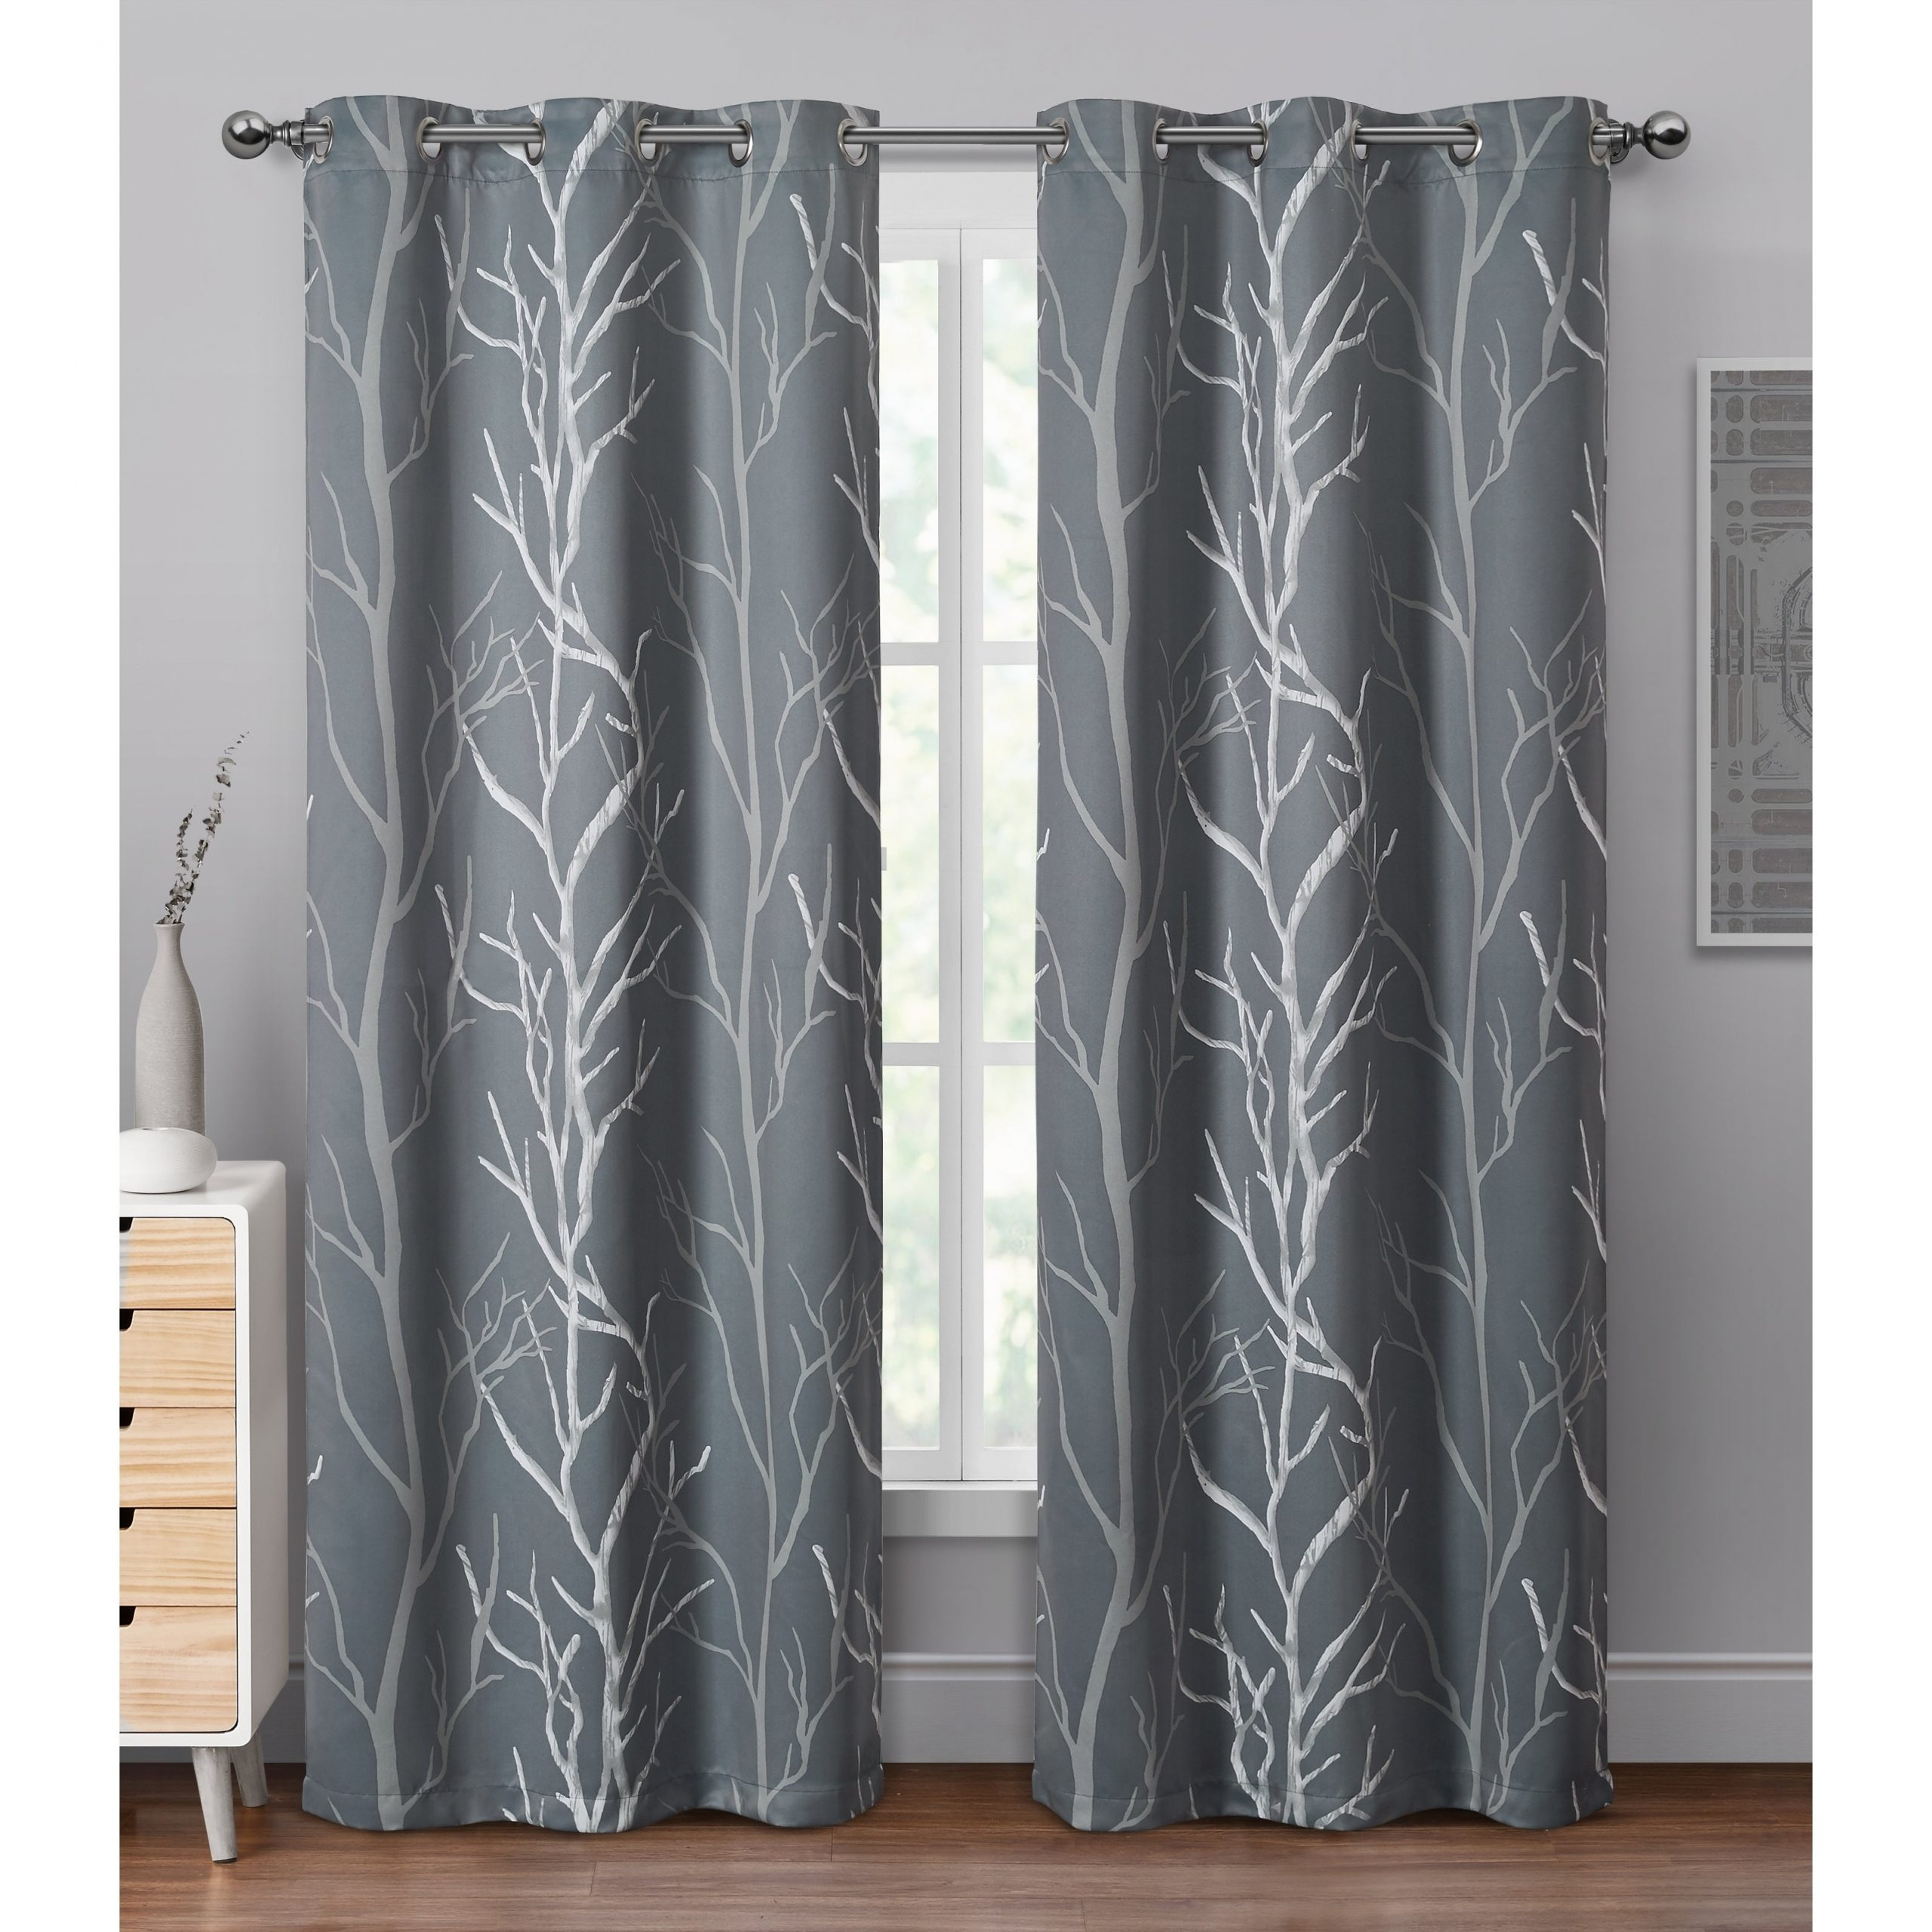 Vcny Home Keyes Blackout Single Curtain Panel Within Trendy Keyes Blackout Single Curtain Panels (View 2 of 20)